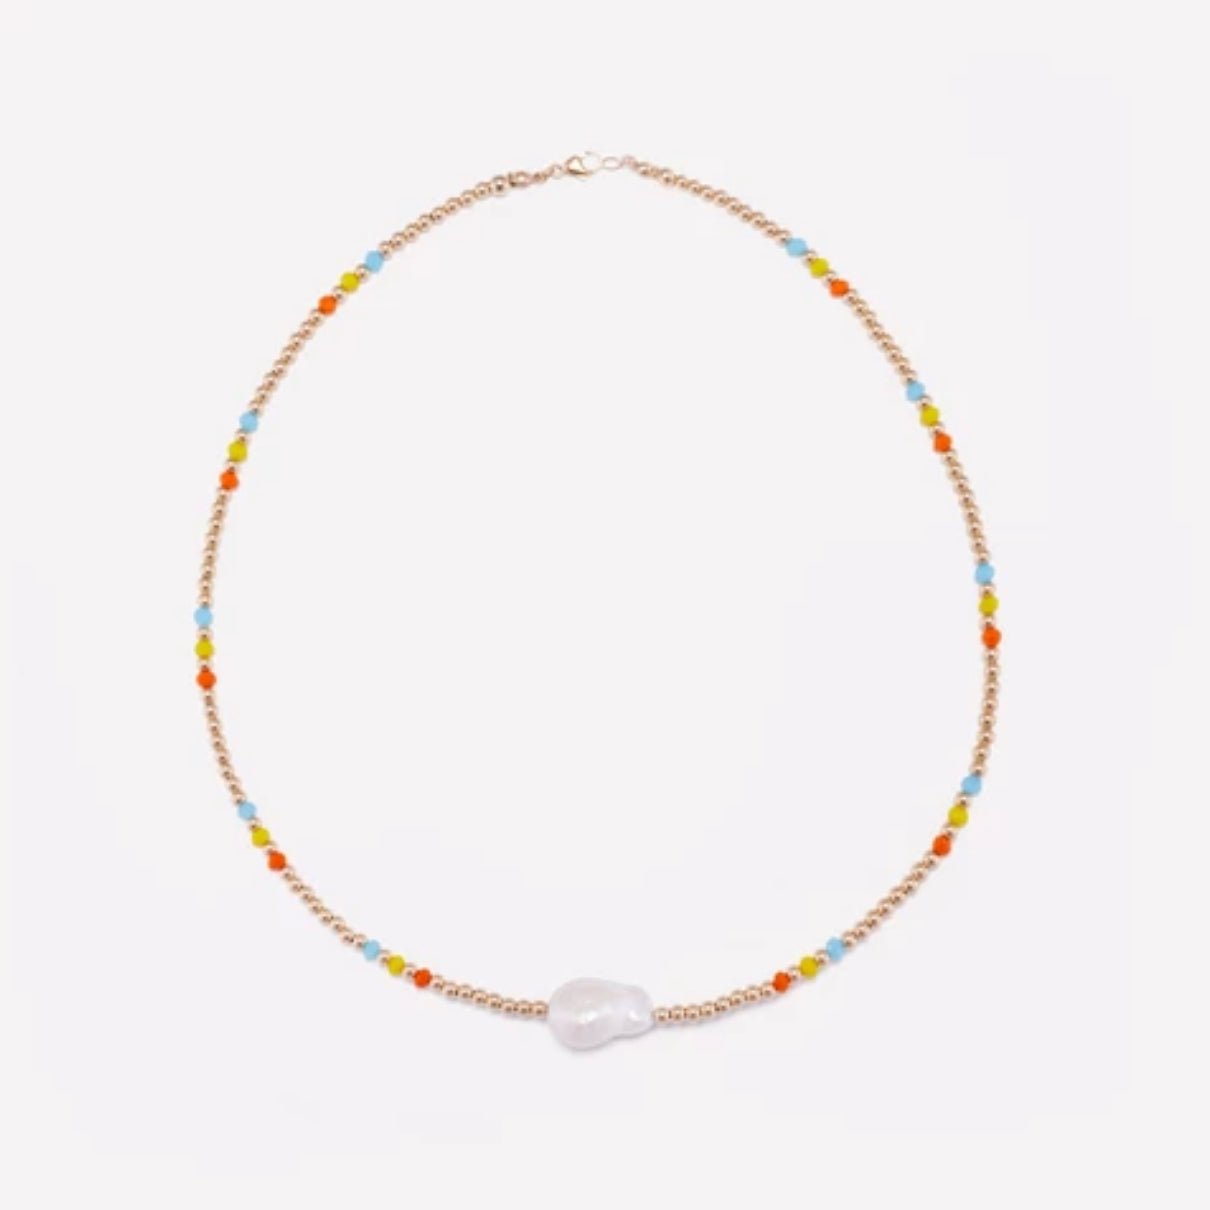 Aqua Mila Rainbow Necklace